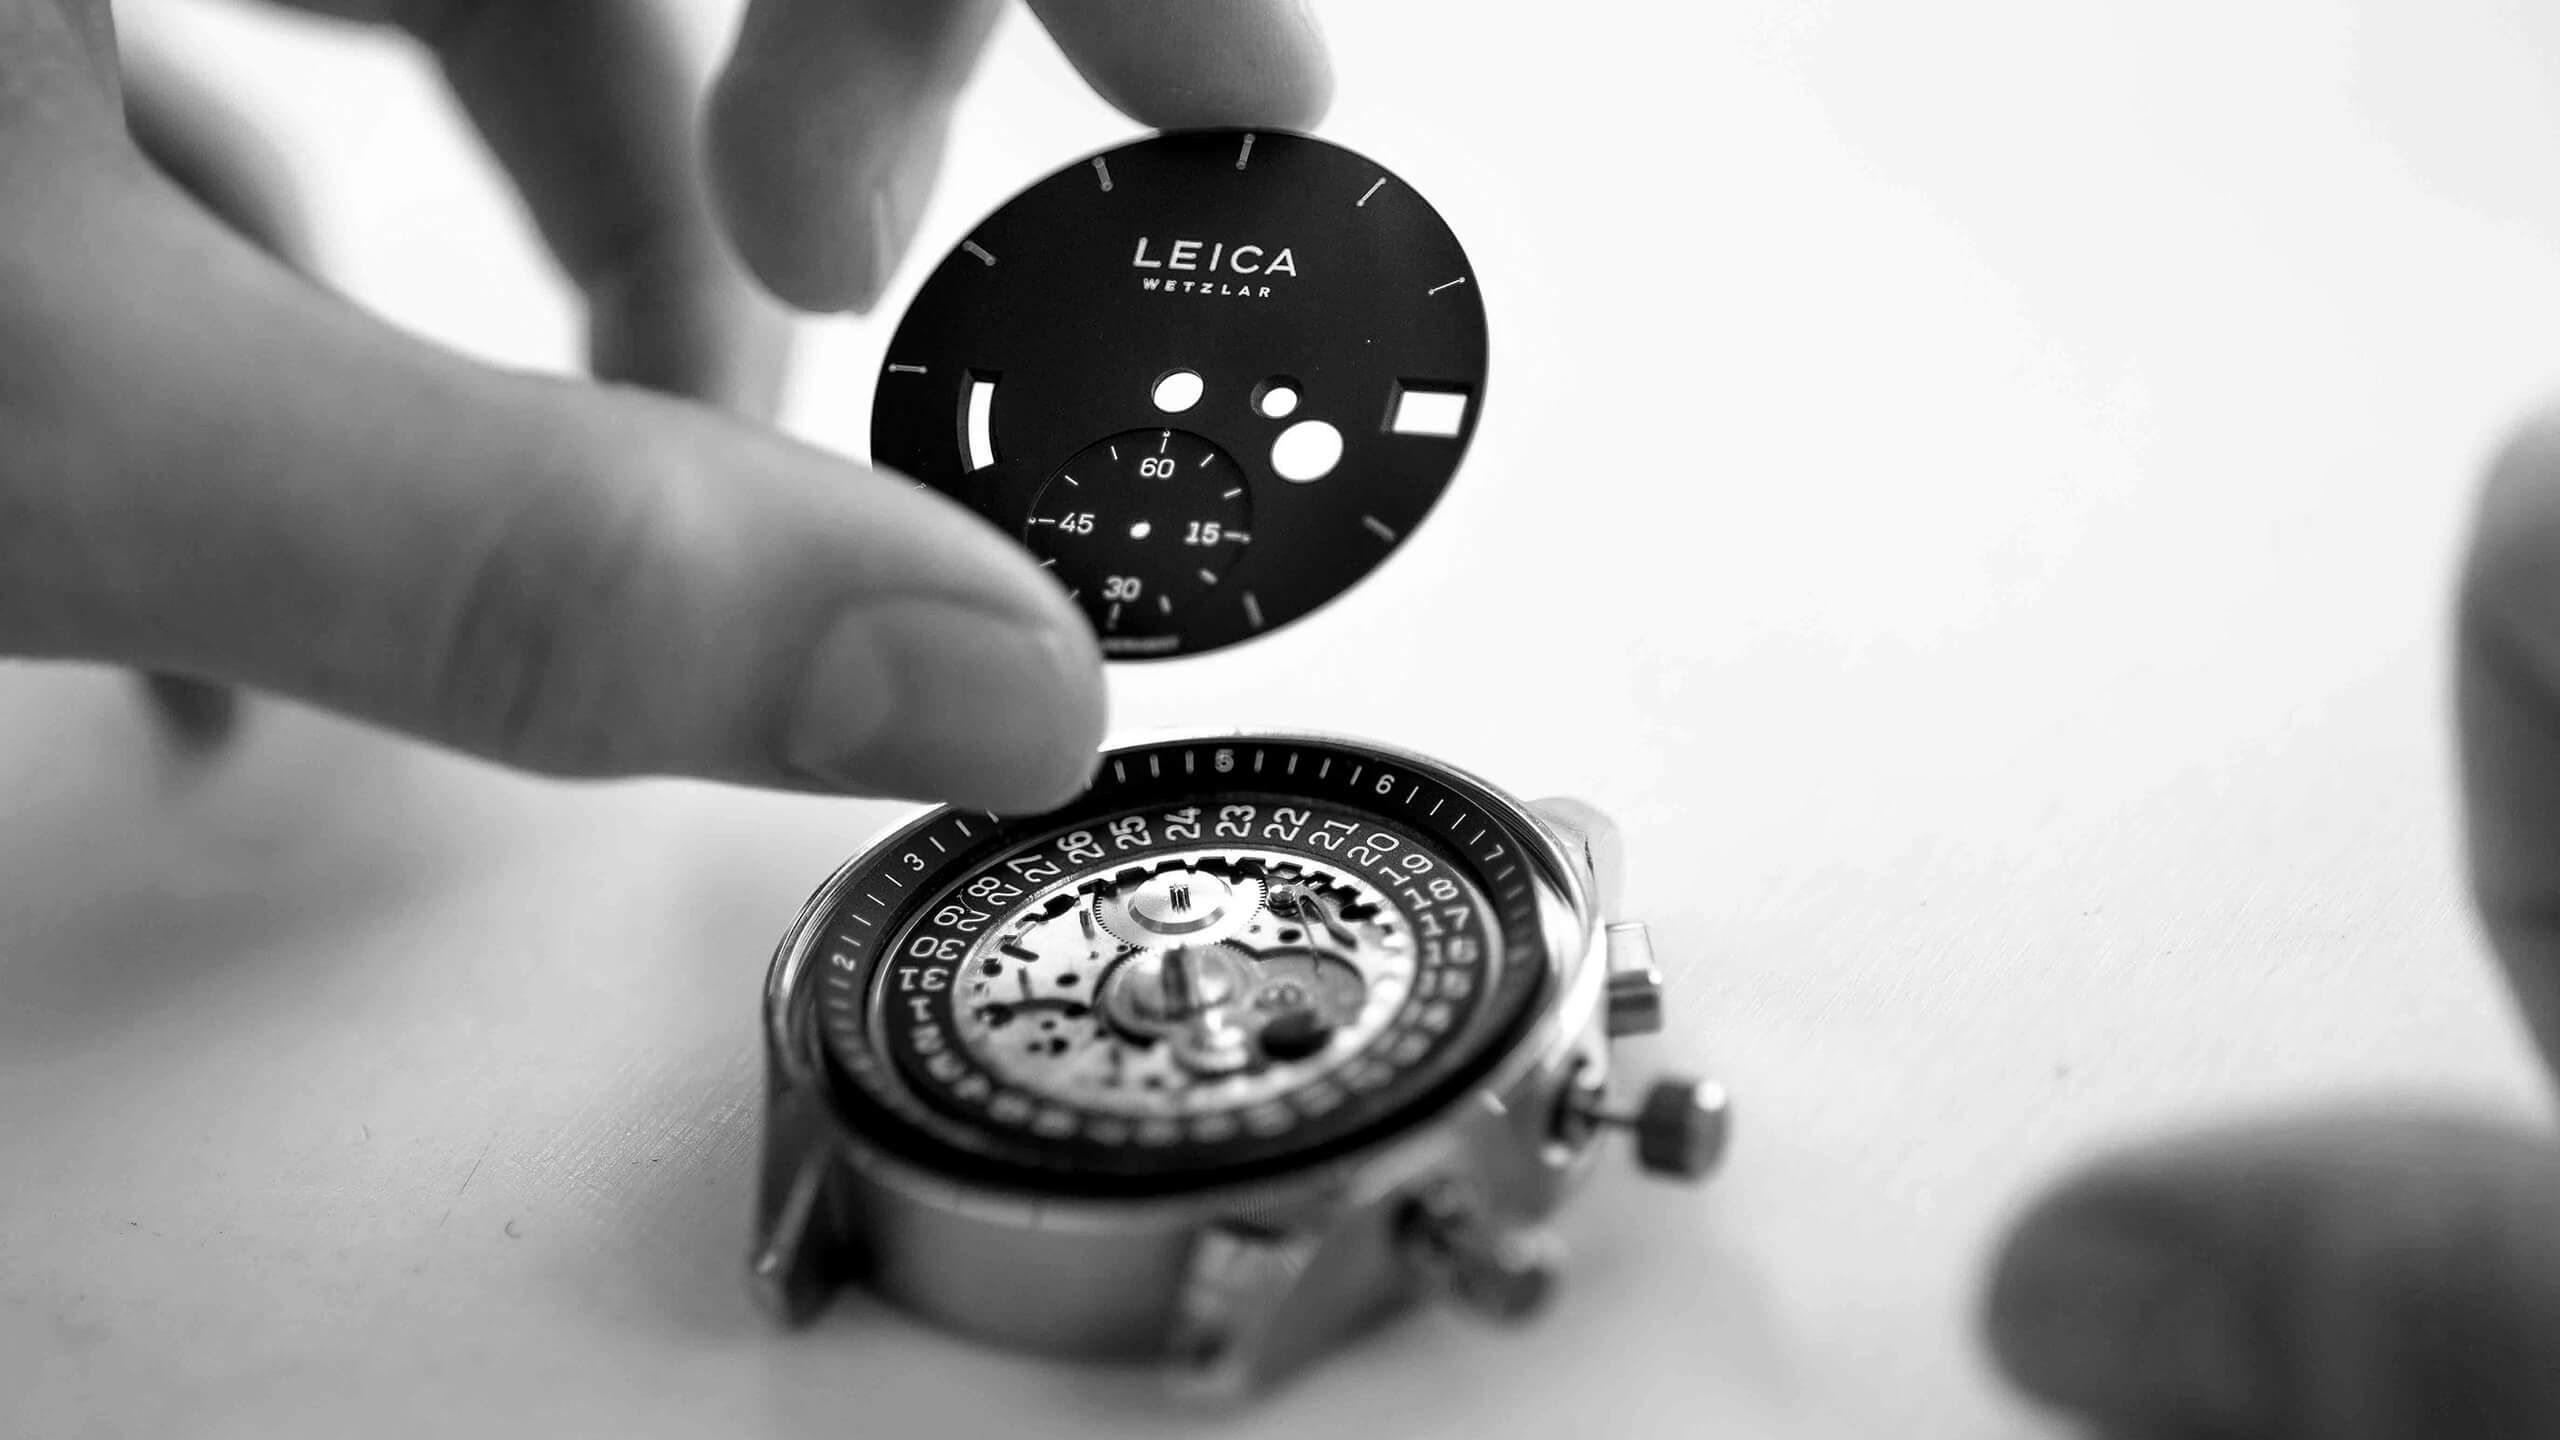 The Leica L1 and L2 watches are expected to be released by the end of the year - Leica Rumors